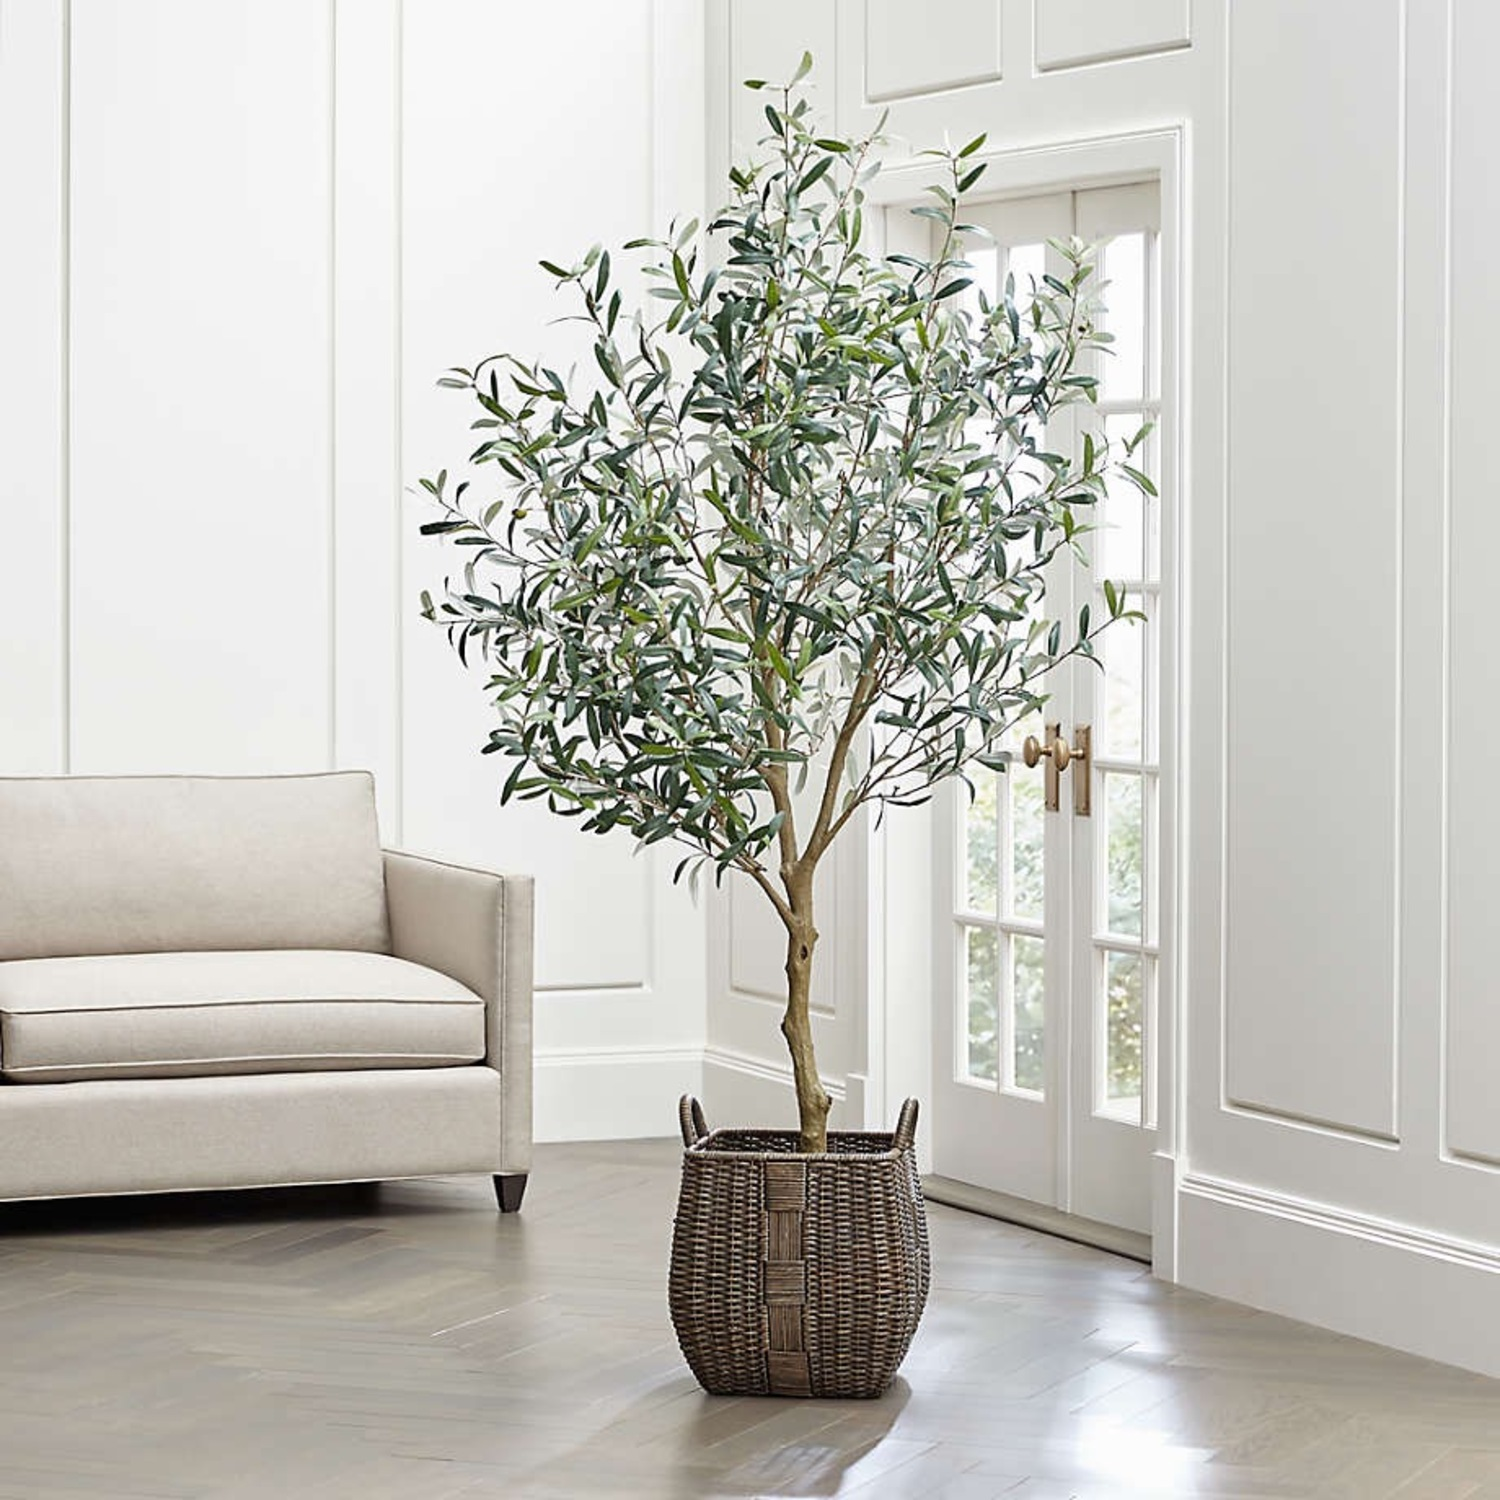 Crate & Barrel 7 Foot Faux Olive Tree - image-1